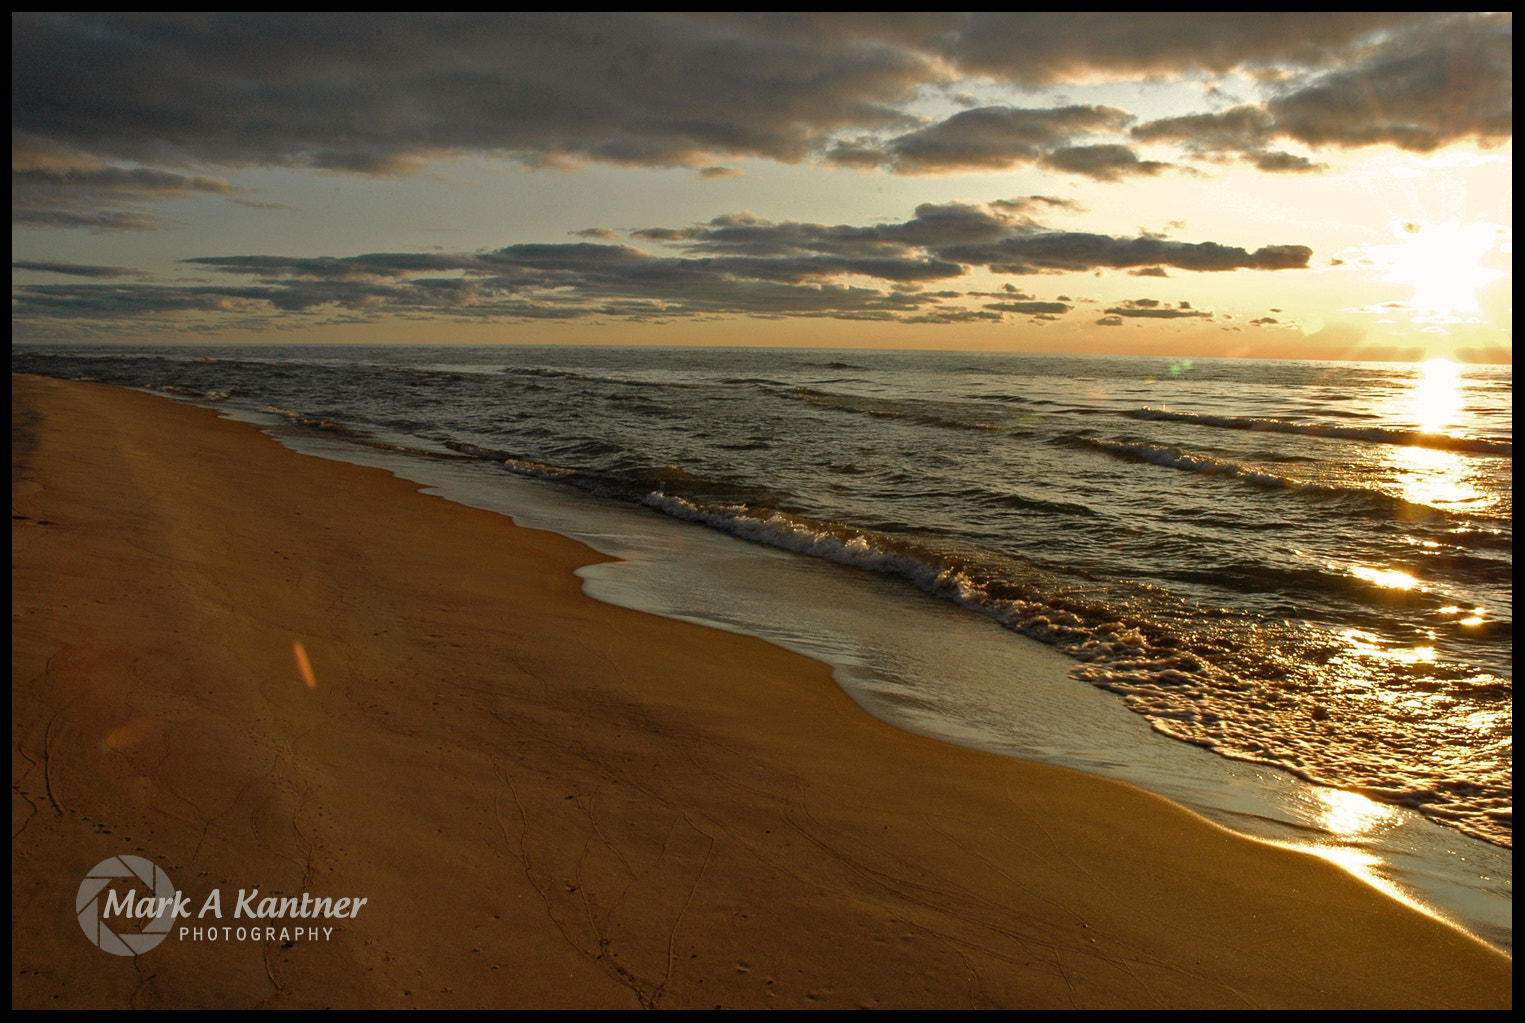 Photograph Lake Michigan Sunset by Mark Kantner on 500px